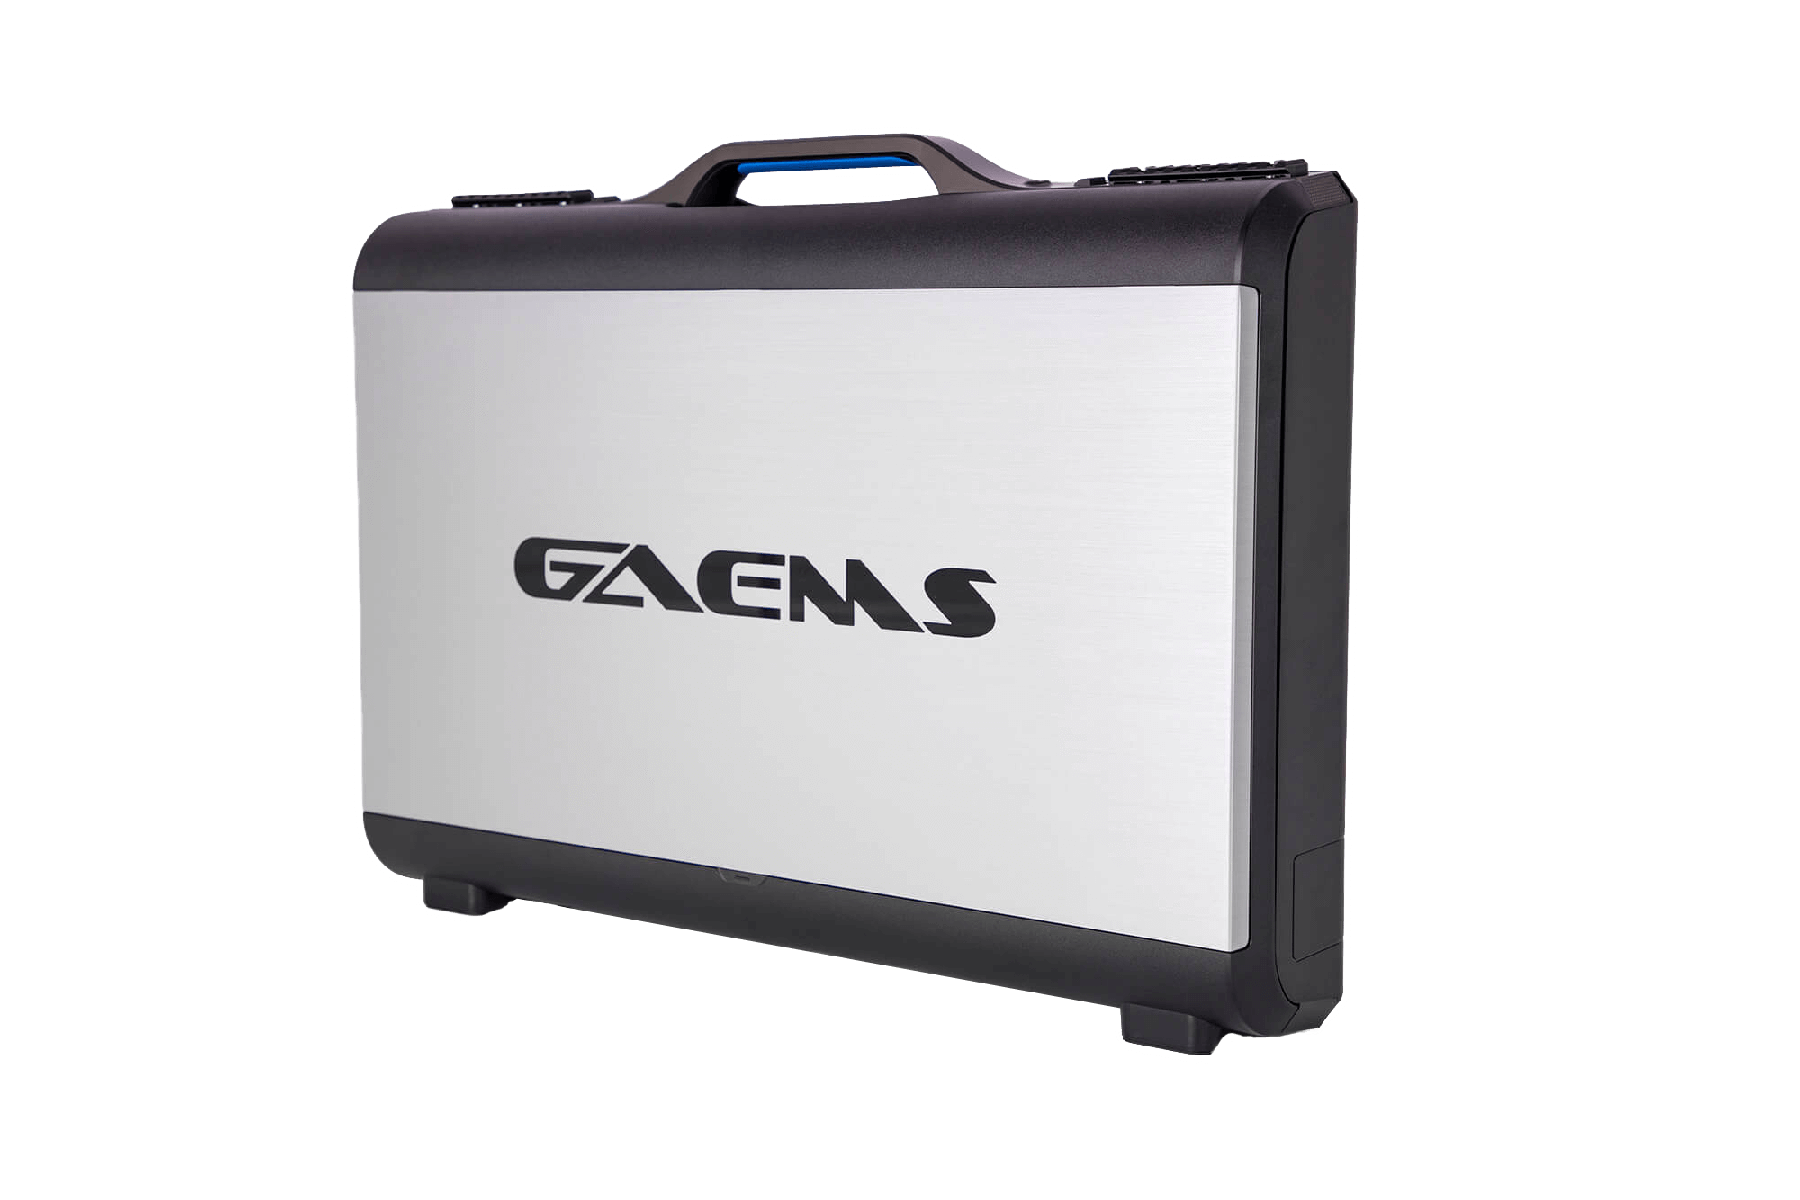 GAEMS Guardian - Pro XP G240 - 24'' Gaming Monitor